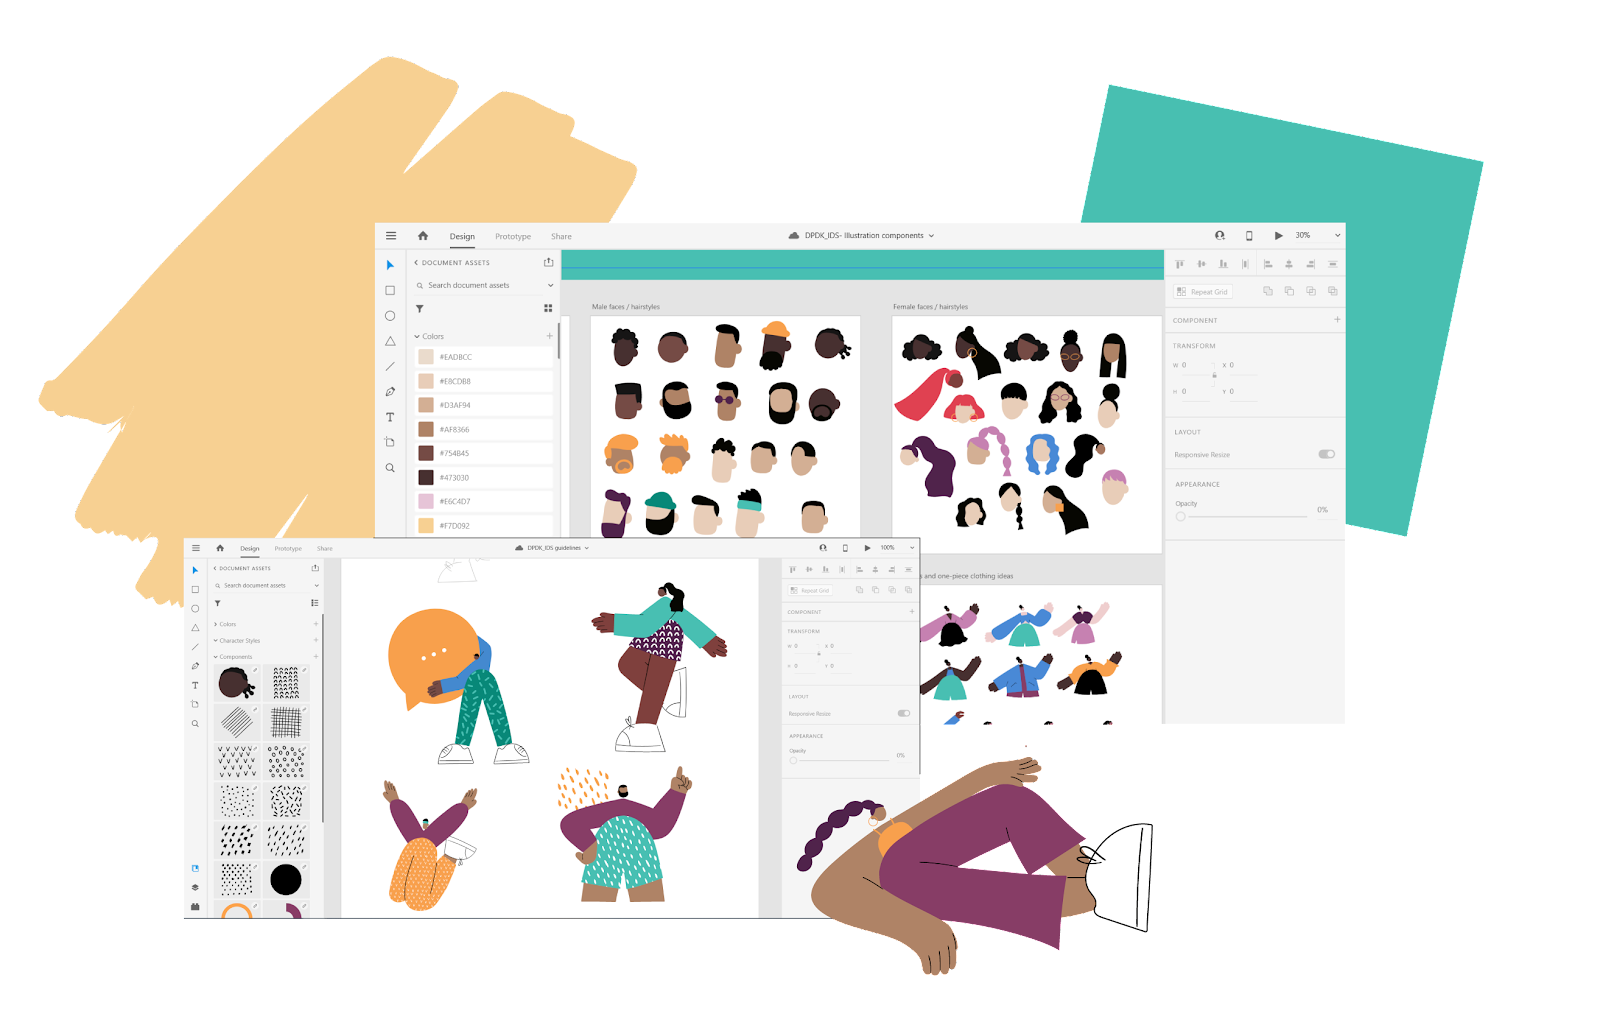 A snapshot of screens in Adobe XD, showcasing DPDK's inclusive design system with its different characters of diverse backgrounds.